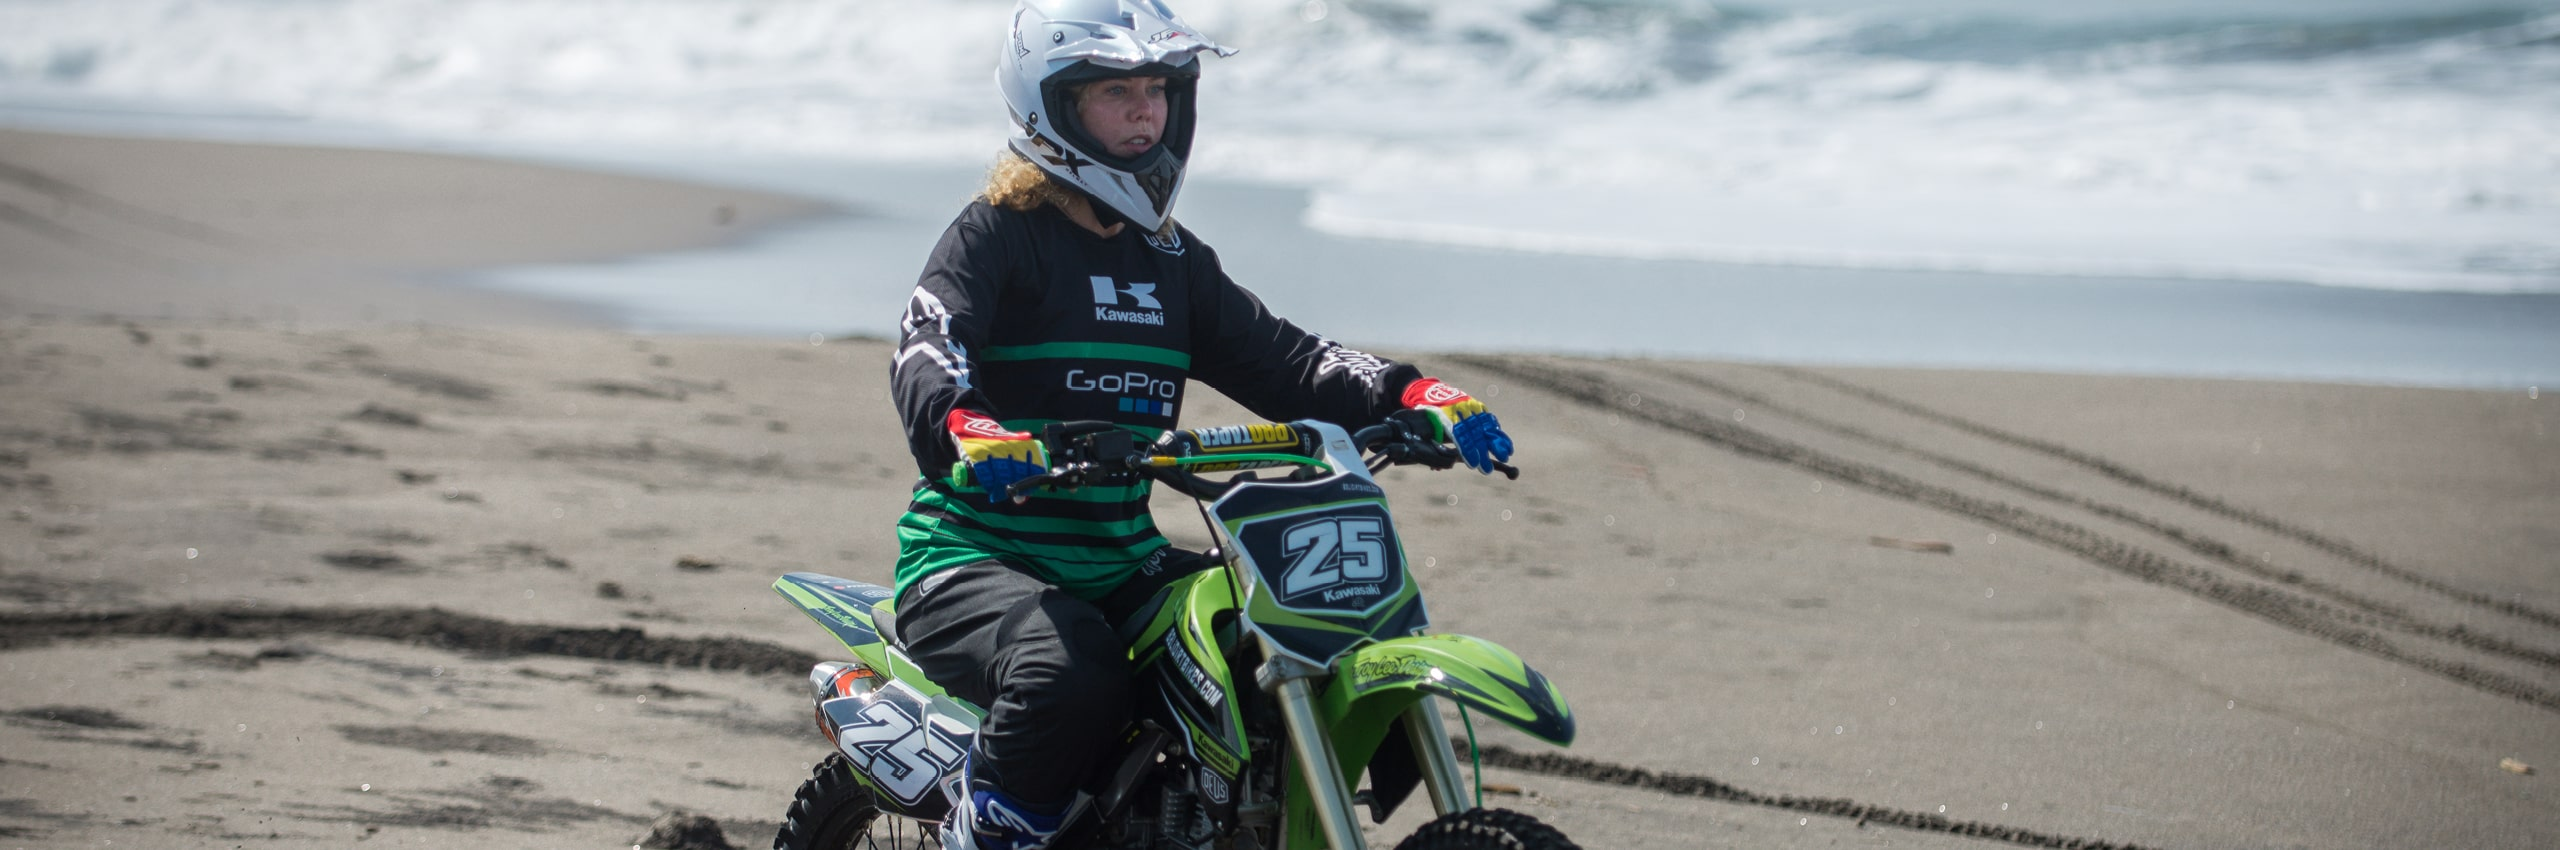 Bali_Dirt_Bikes_Learn_to_ride_Slider5